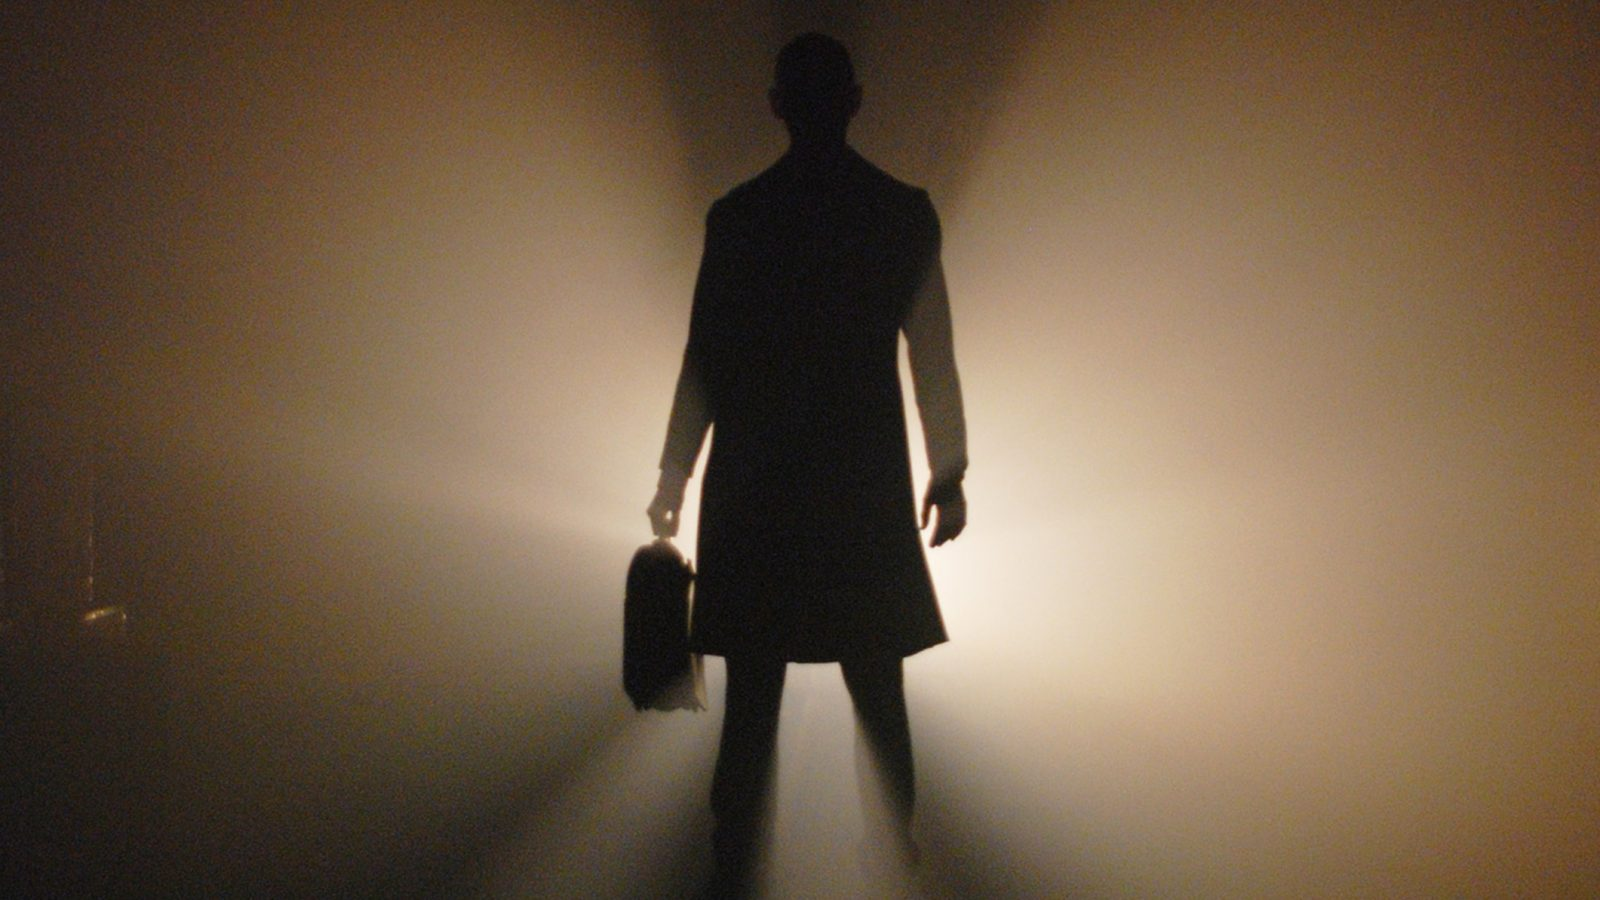 Silhouette of a person standing in front of a light